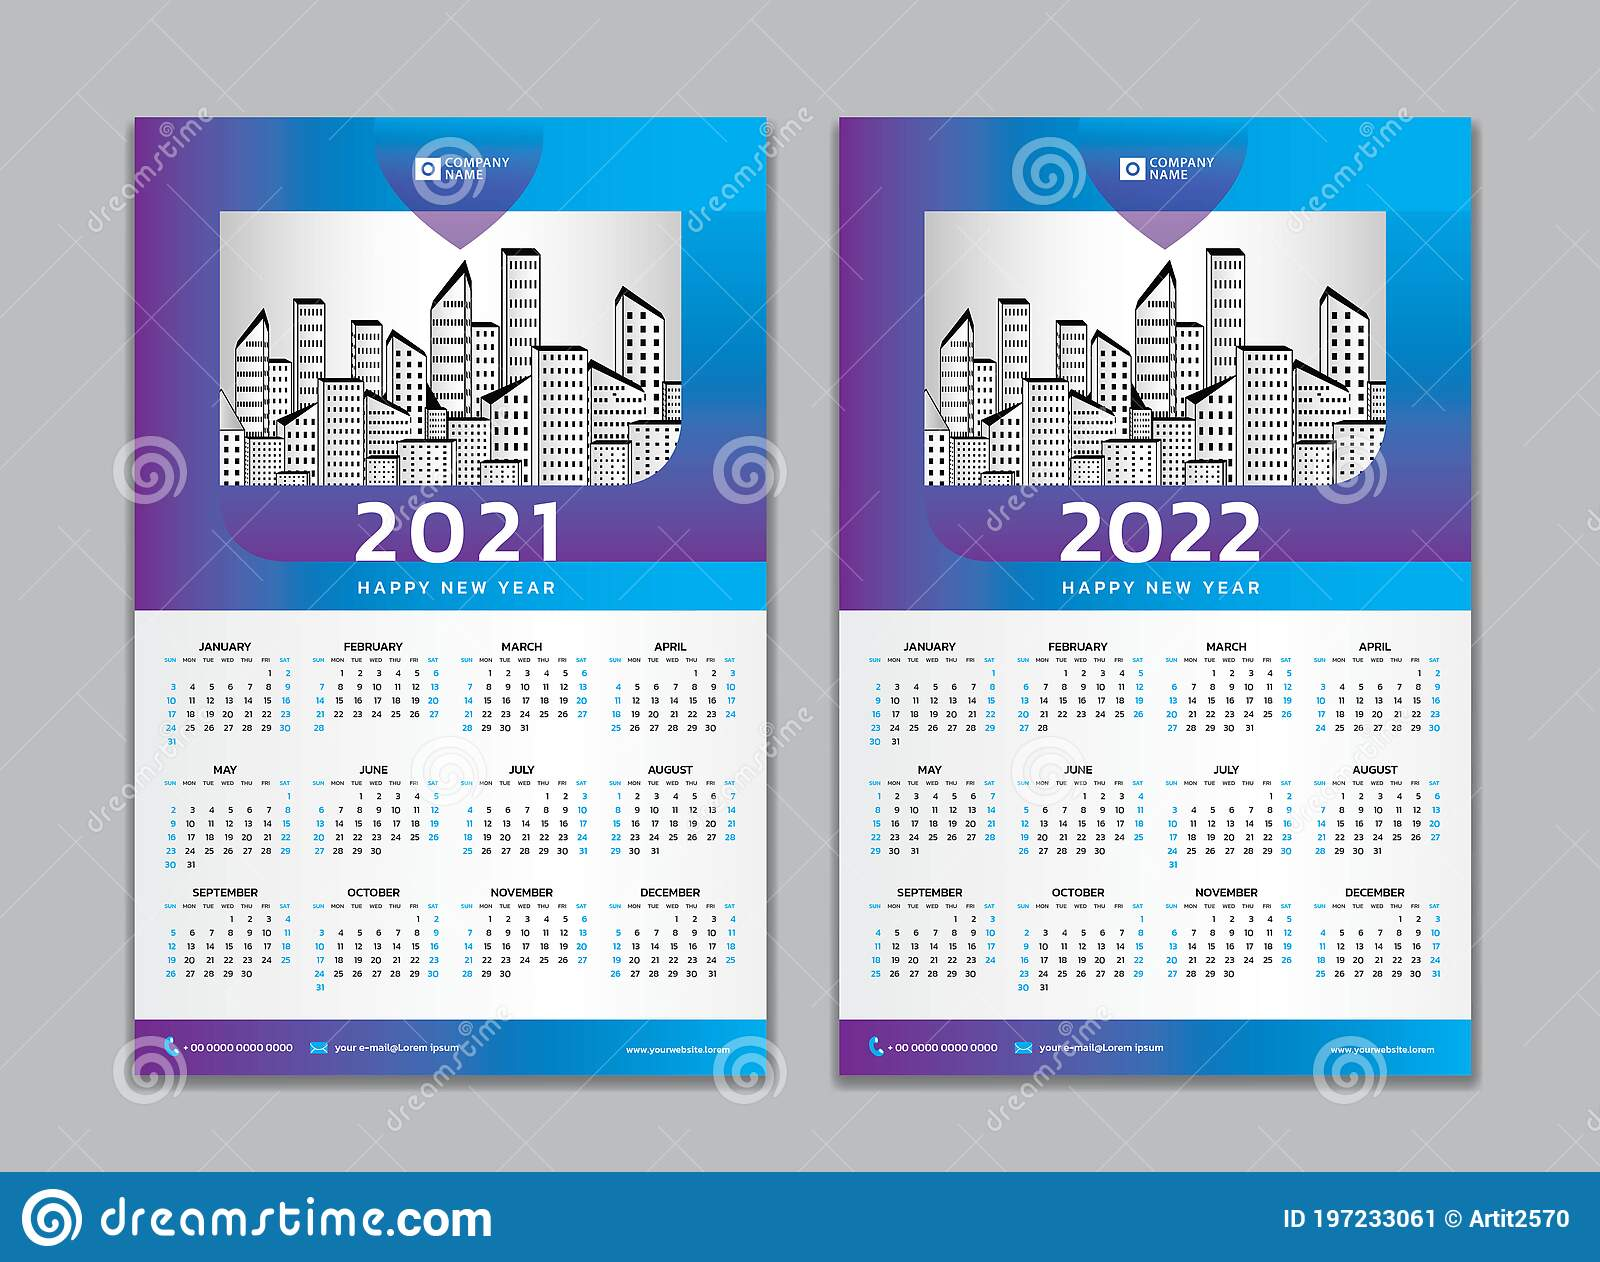 Free 2022 Wall Calendar By Mail.Calendar 2021 2022 Template Vector Wall Calendar 2021 2022 Design 12 Months Include Stock Vector Illustration Of Cover Months 197233061